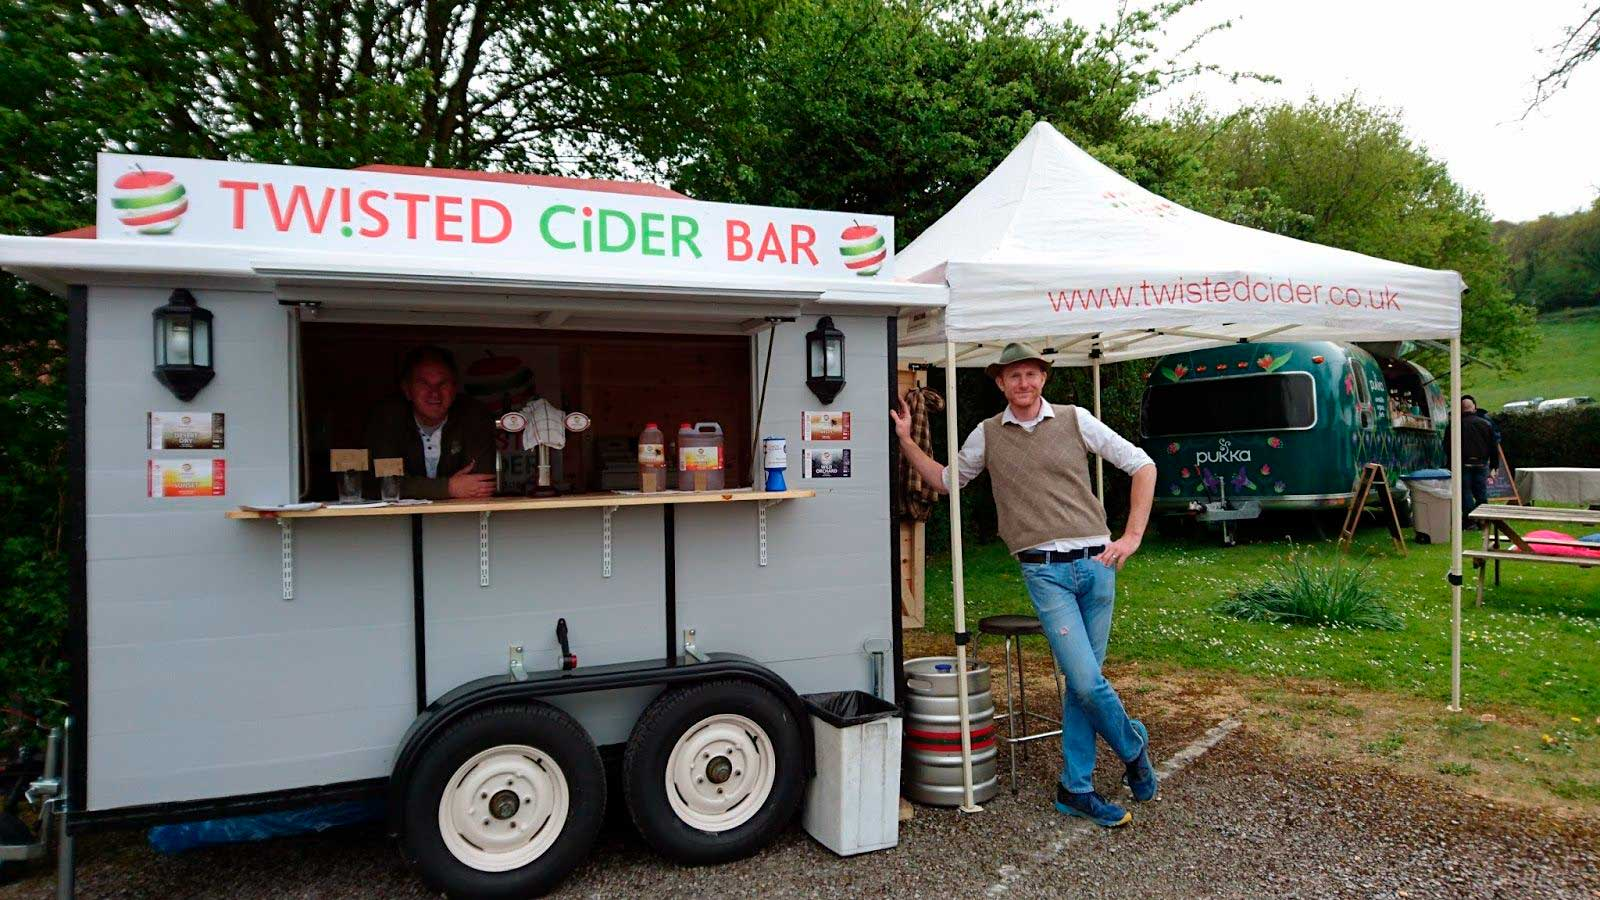 Twisted Cider Bar Content Page 4 Image 0002